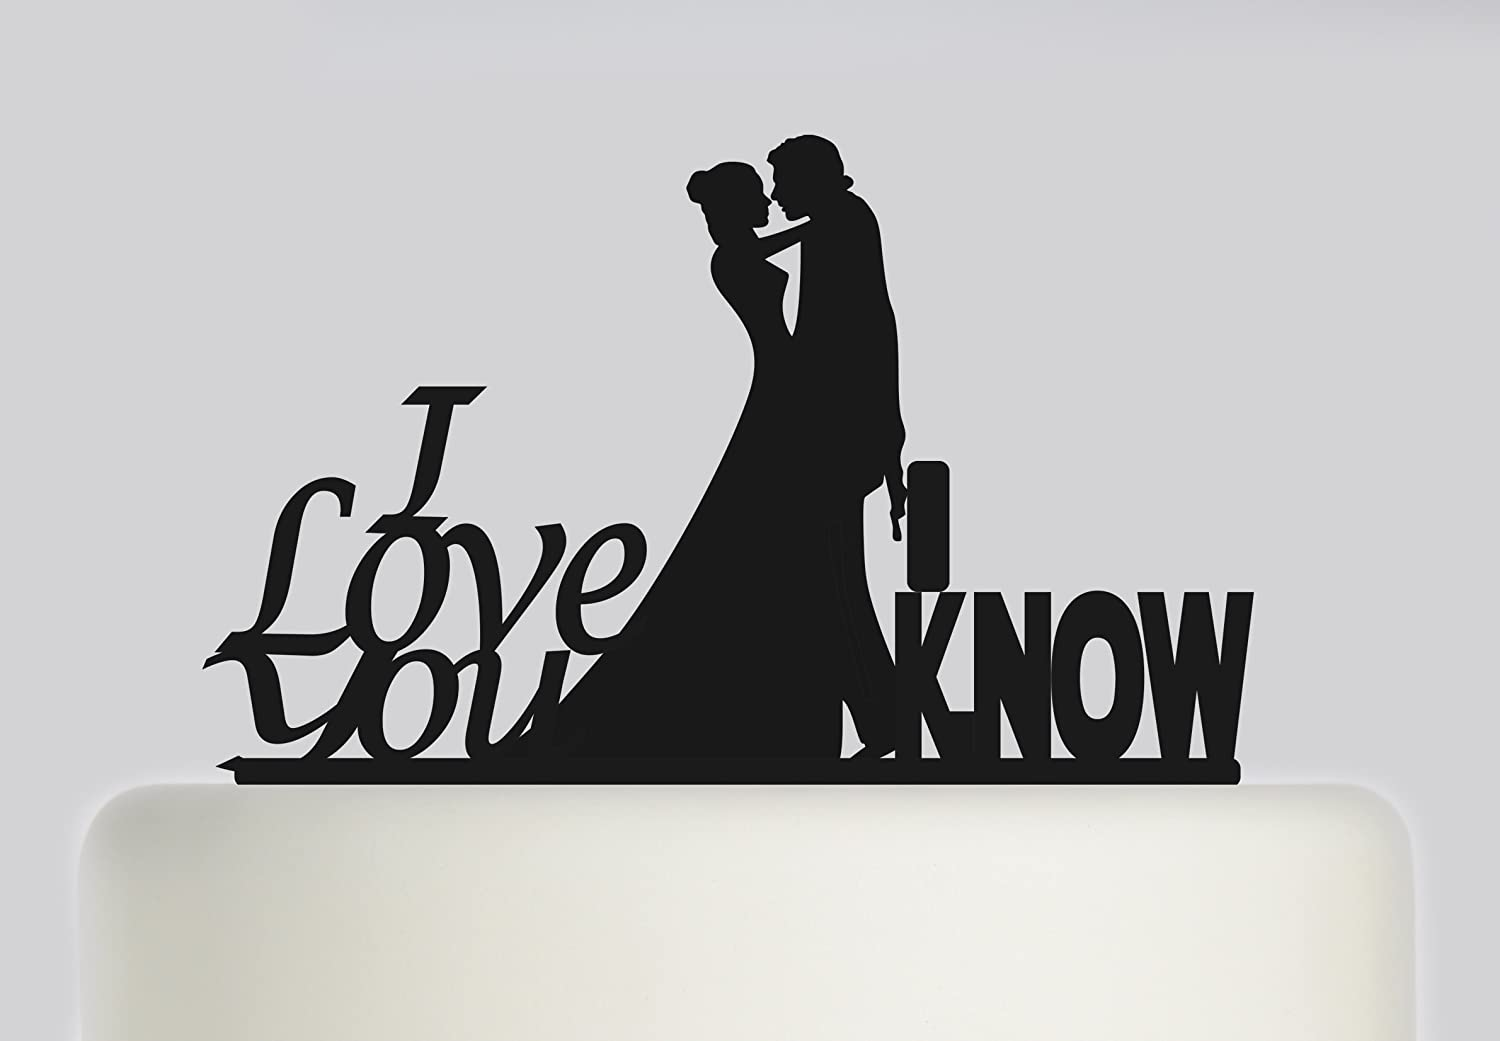 Wedding Cake topper Bride and Groom Mr and Mrs, Star Wars Themed, Han Solo and Leia, I Love You, I Know. Ideal handmade wedding cake decoration, wedding party Acrylic cake topper MR & Mrs Cake topper, Available in Gold Mirror, Gold Sparkle, Silver Mirror,